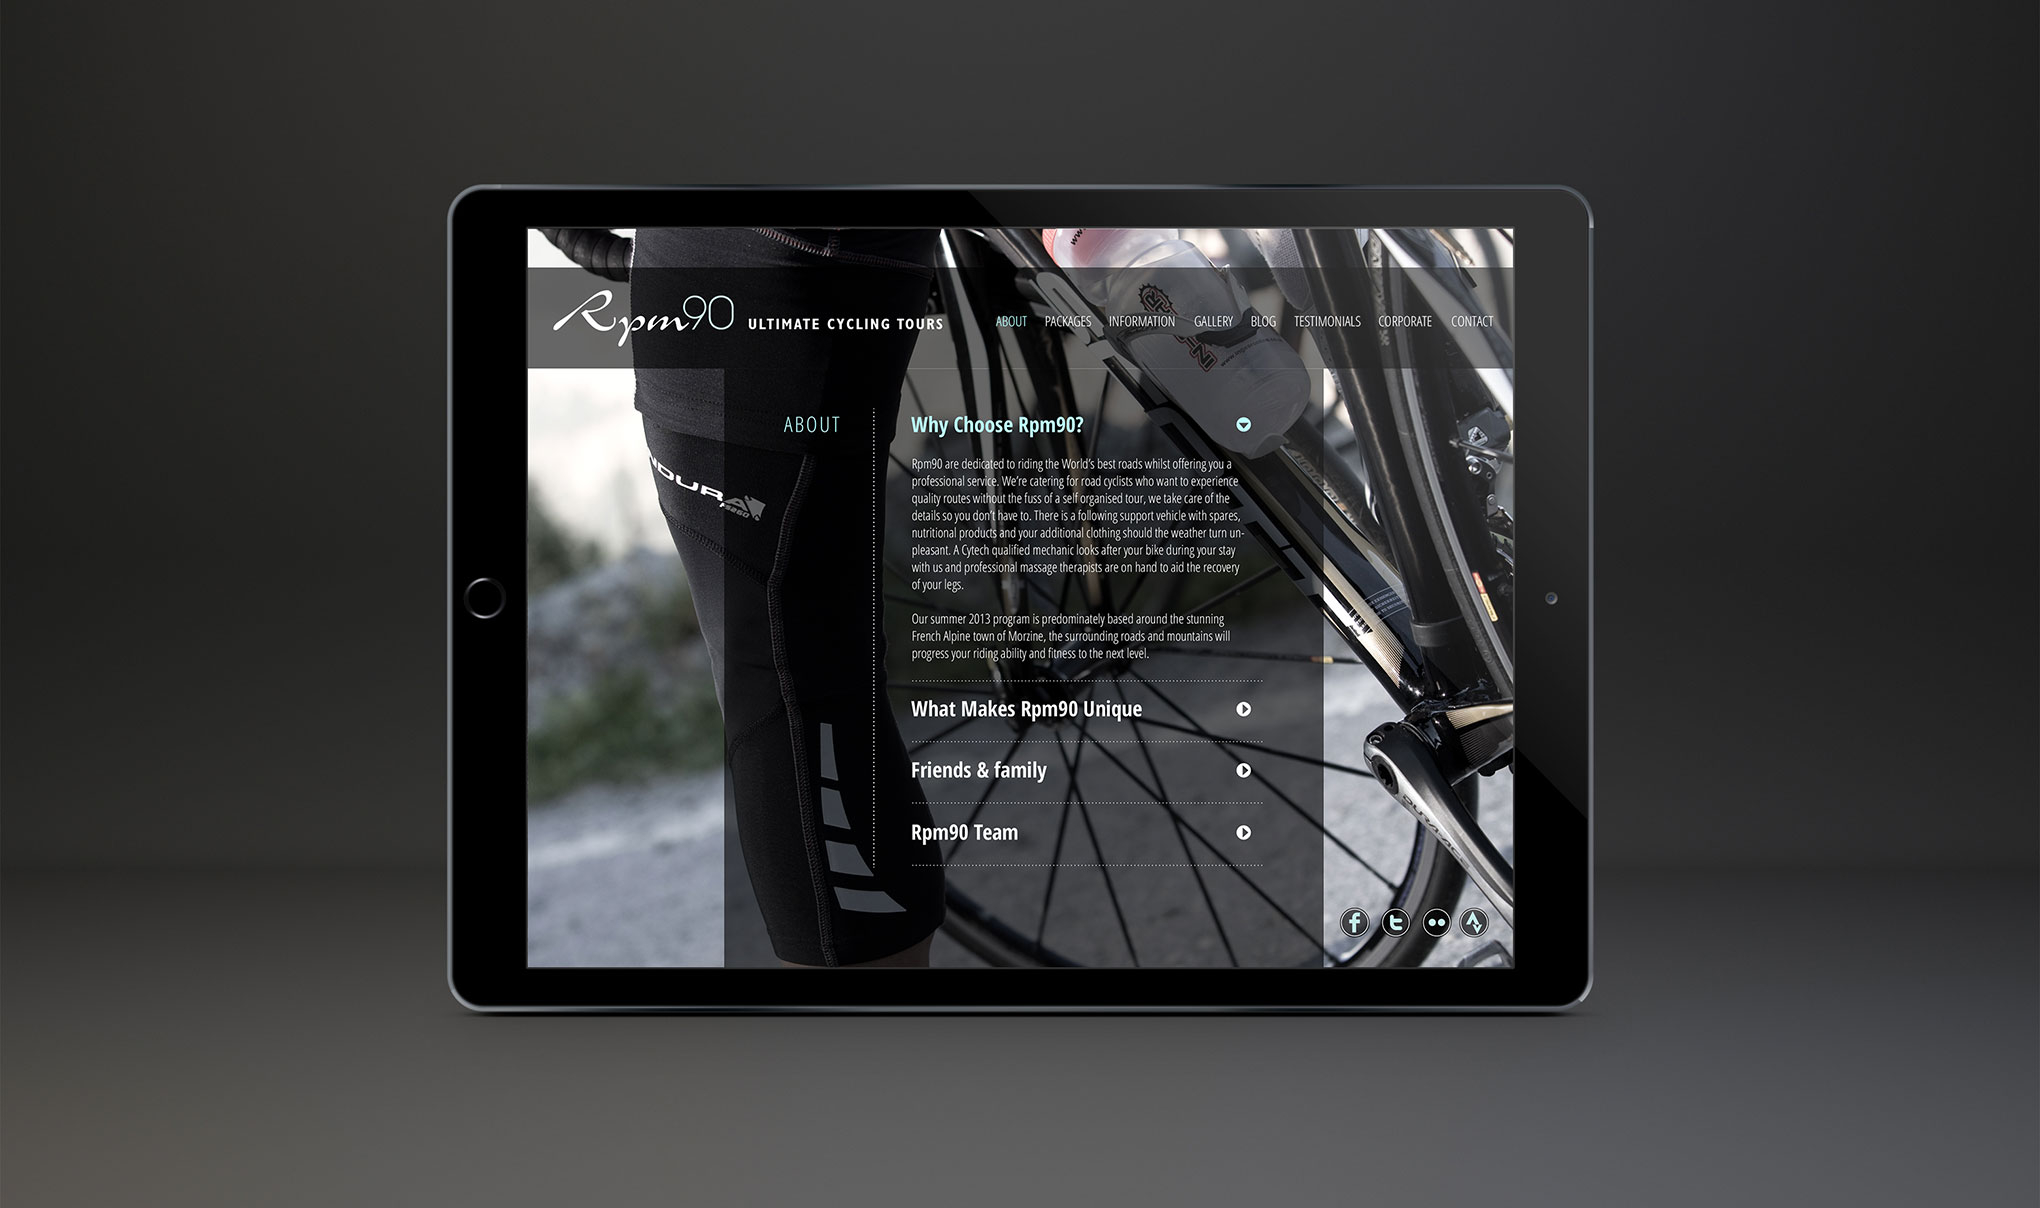 Web Design for RPM90 cycling holidays - About us page.